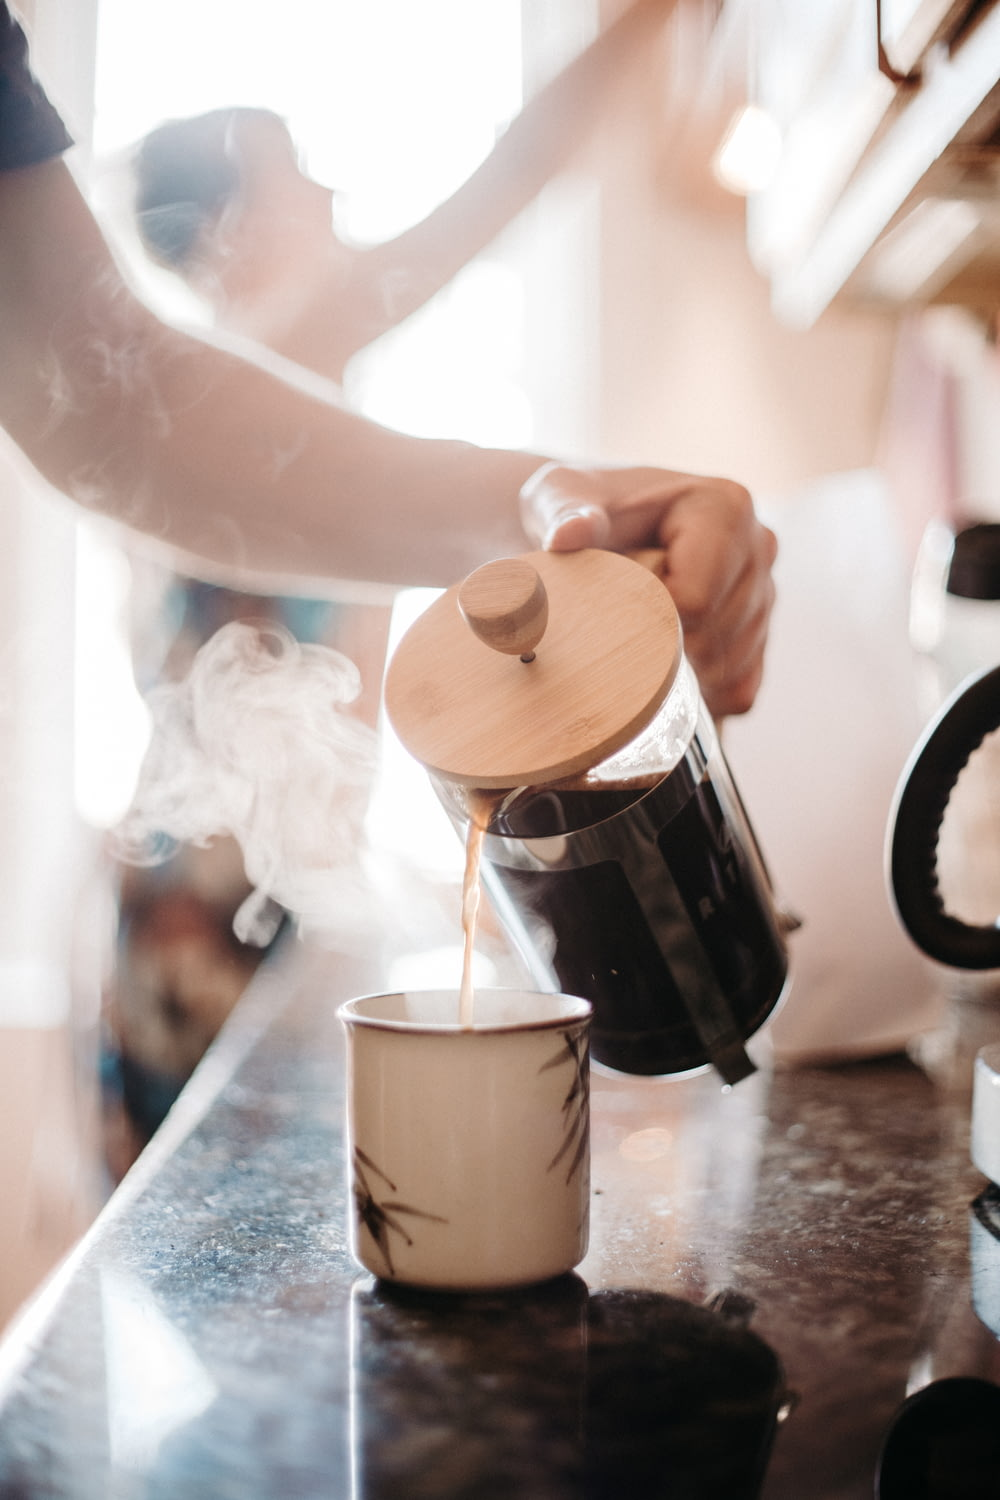 time-lapse photography of person pouring coffee on mug